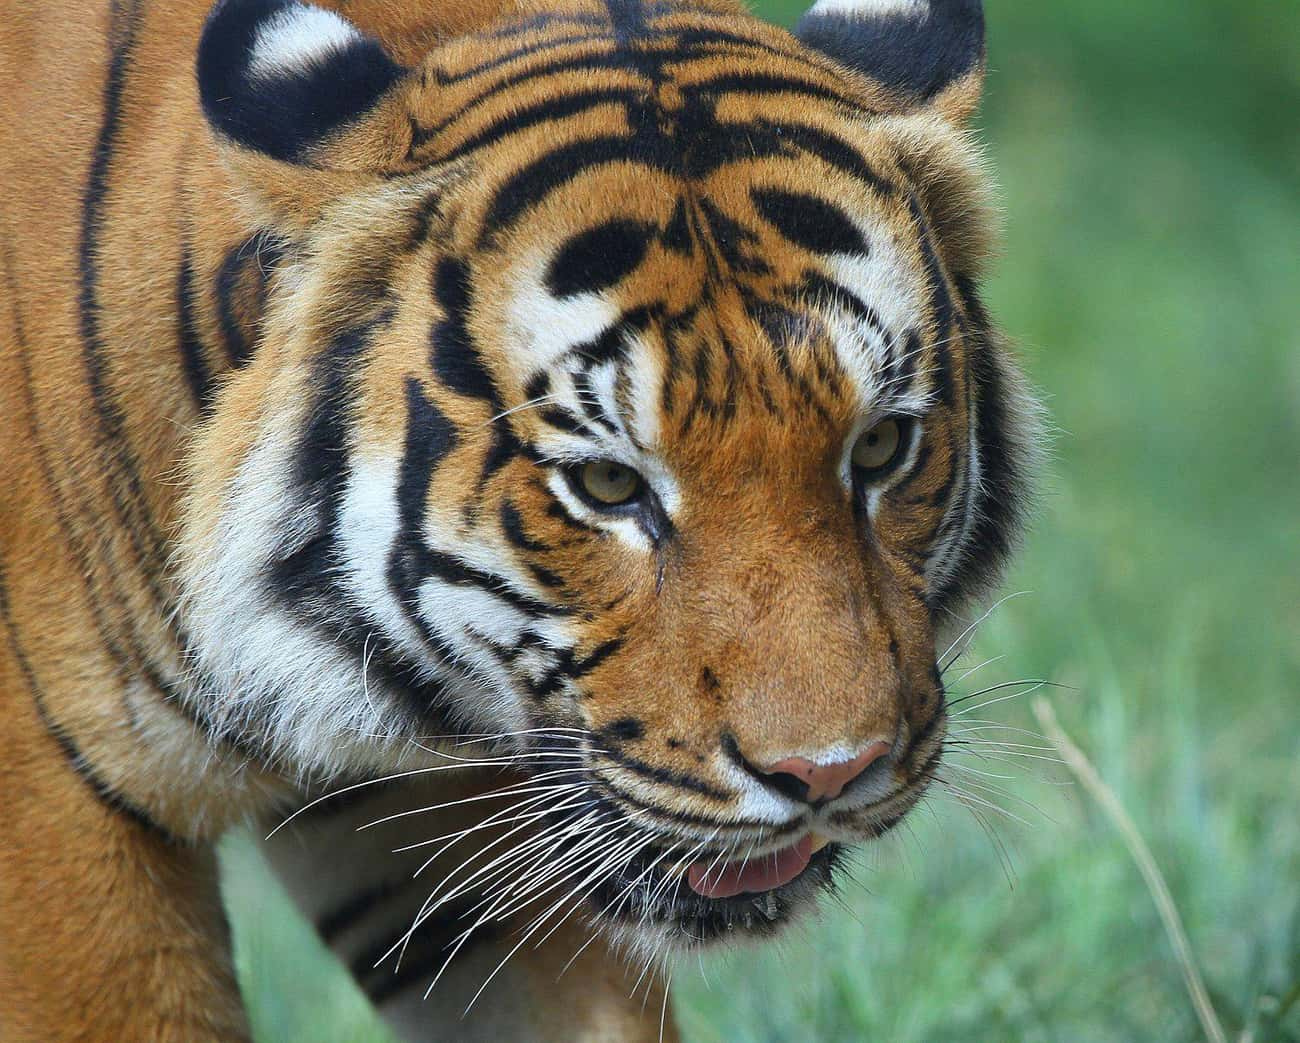 Malayan Tiger is listed (or ranked) 4 on the list The World's Most Beautiful Animals